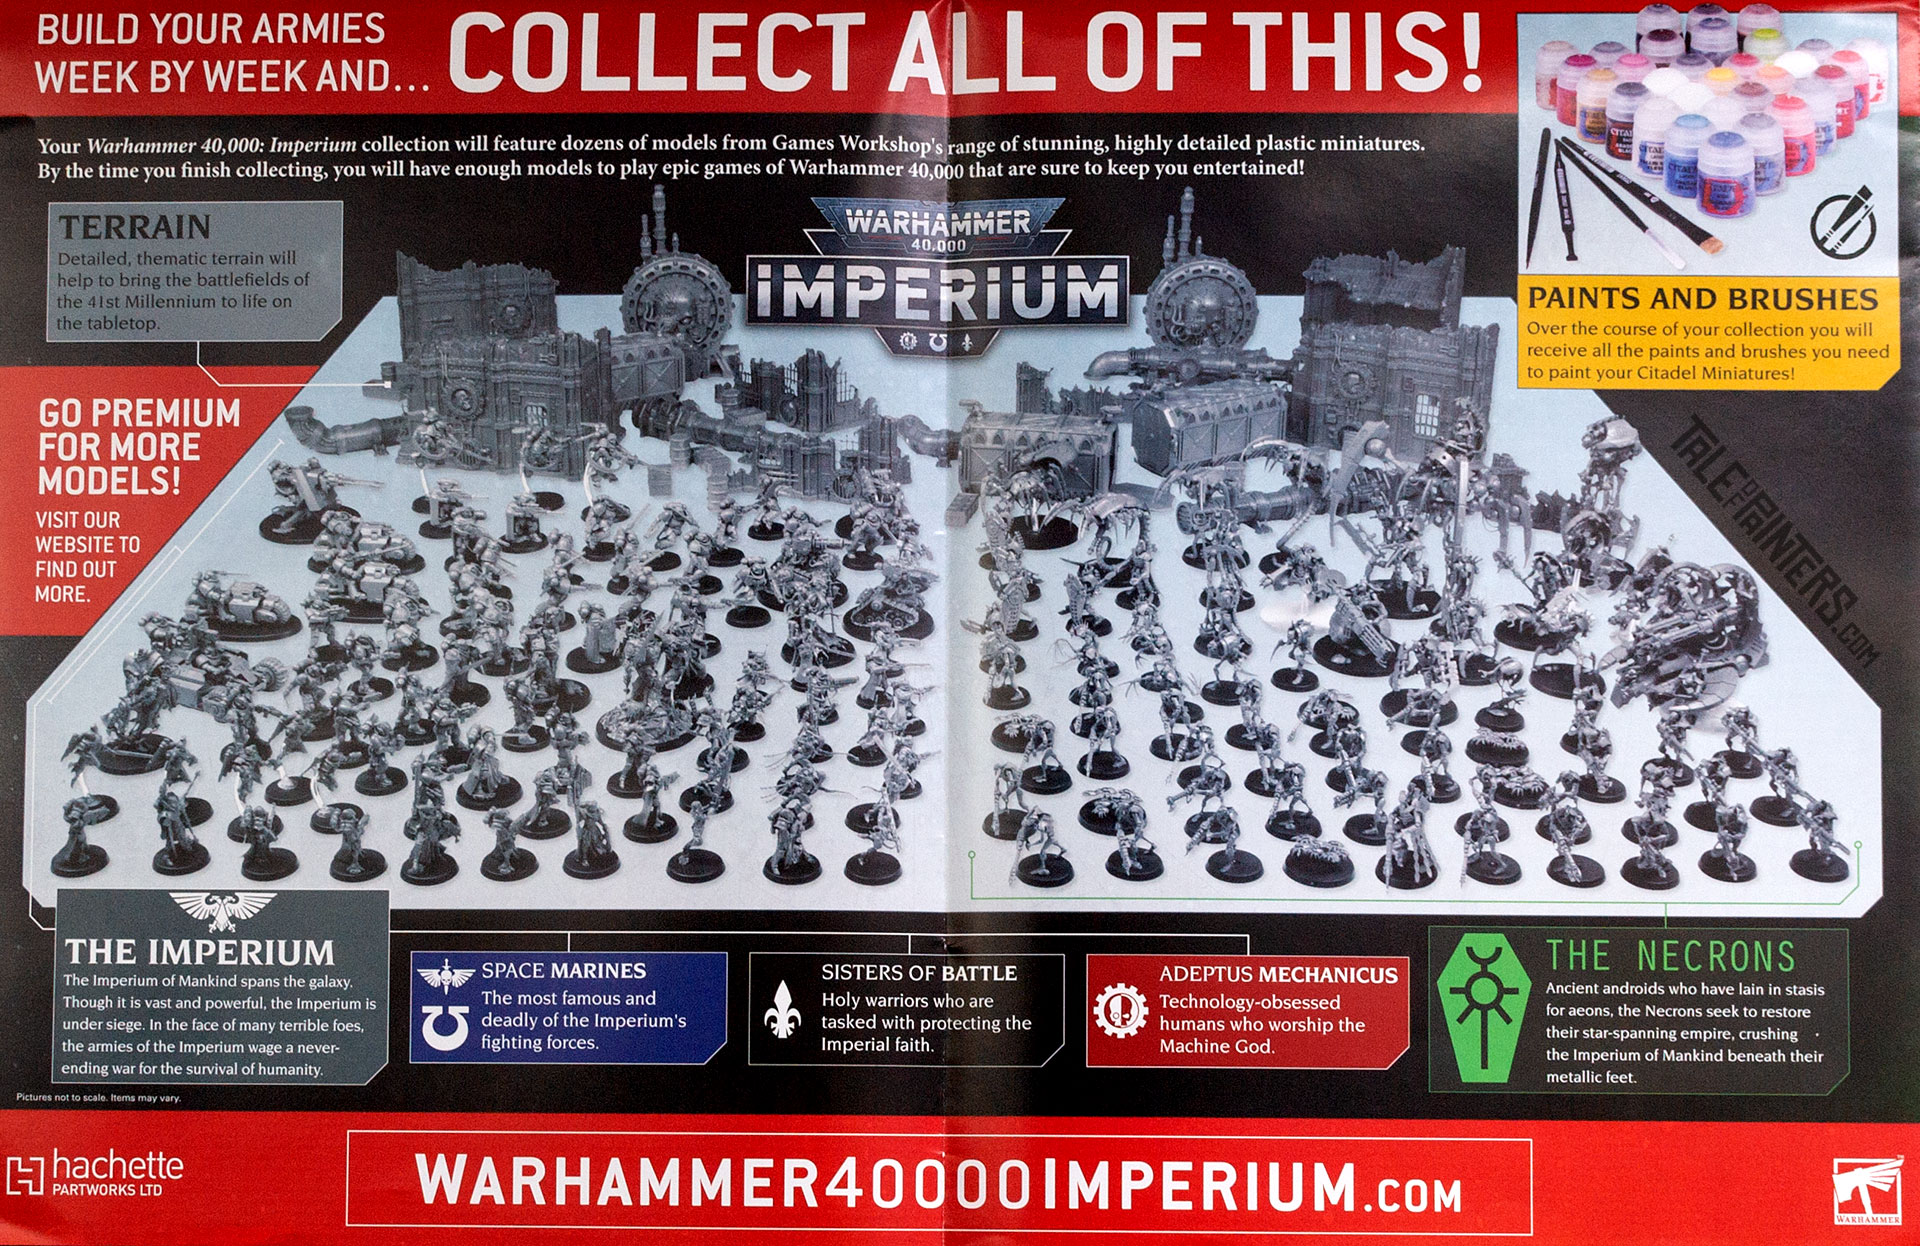 Warhammer 40.000: Imperium Collection Overview